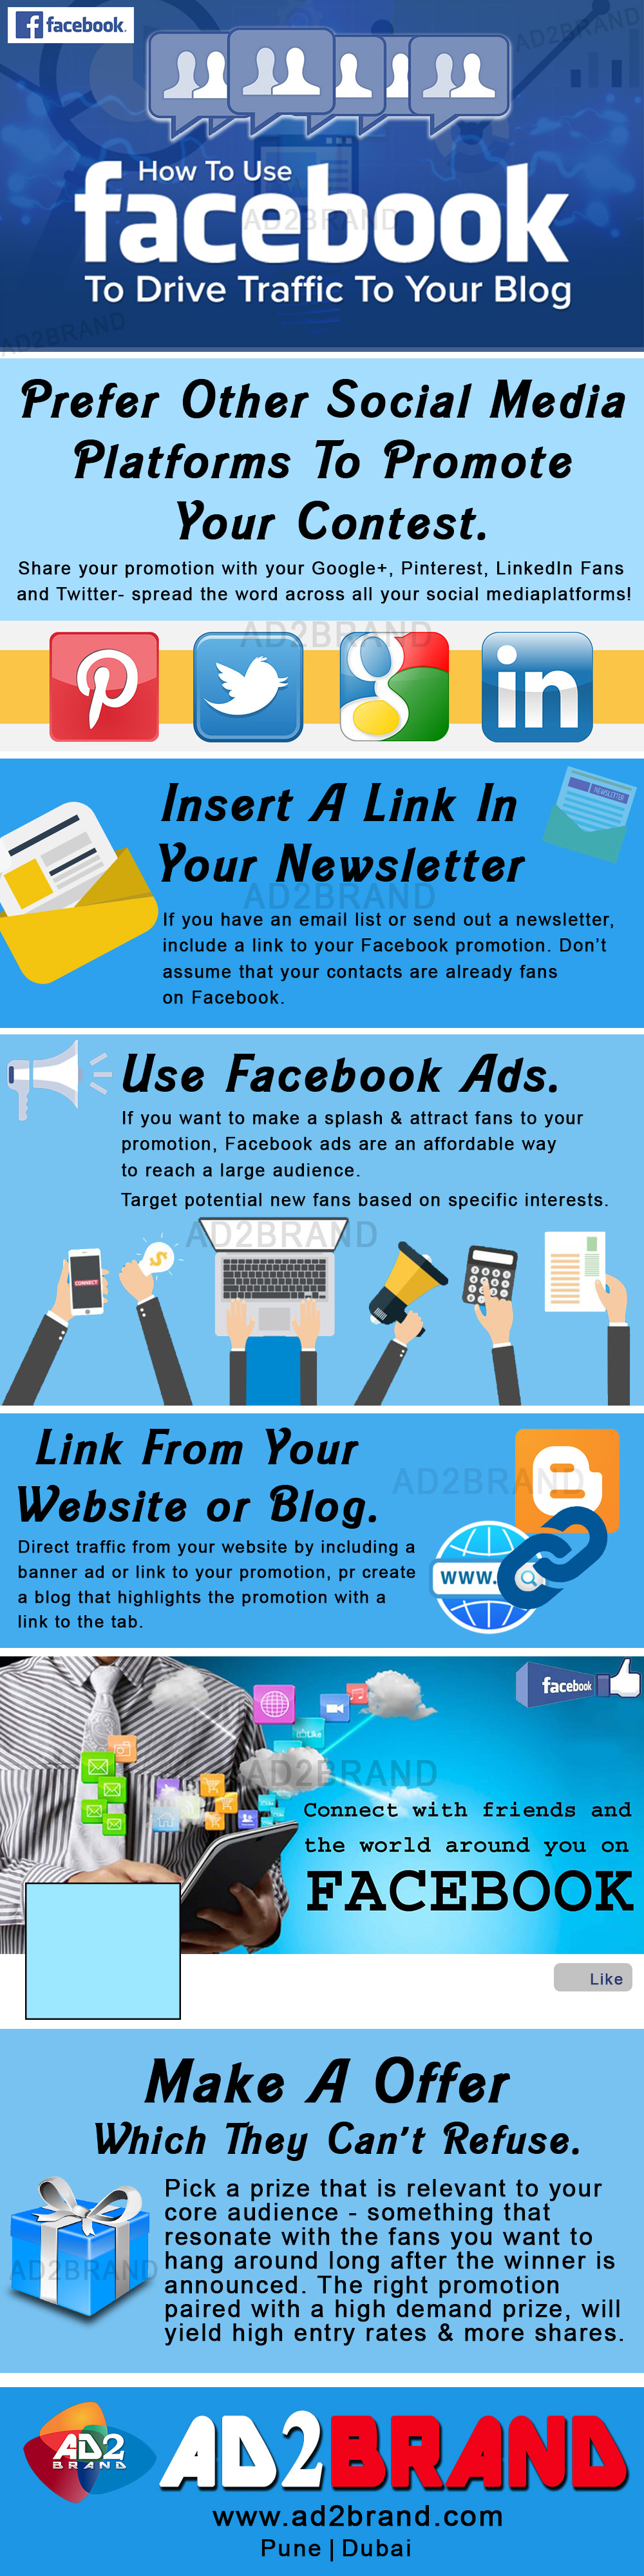 How to use facebook to drive traffic to your blog.